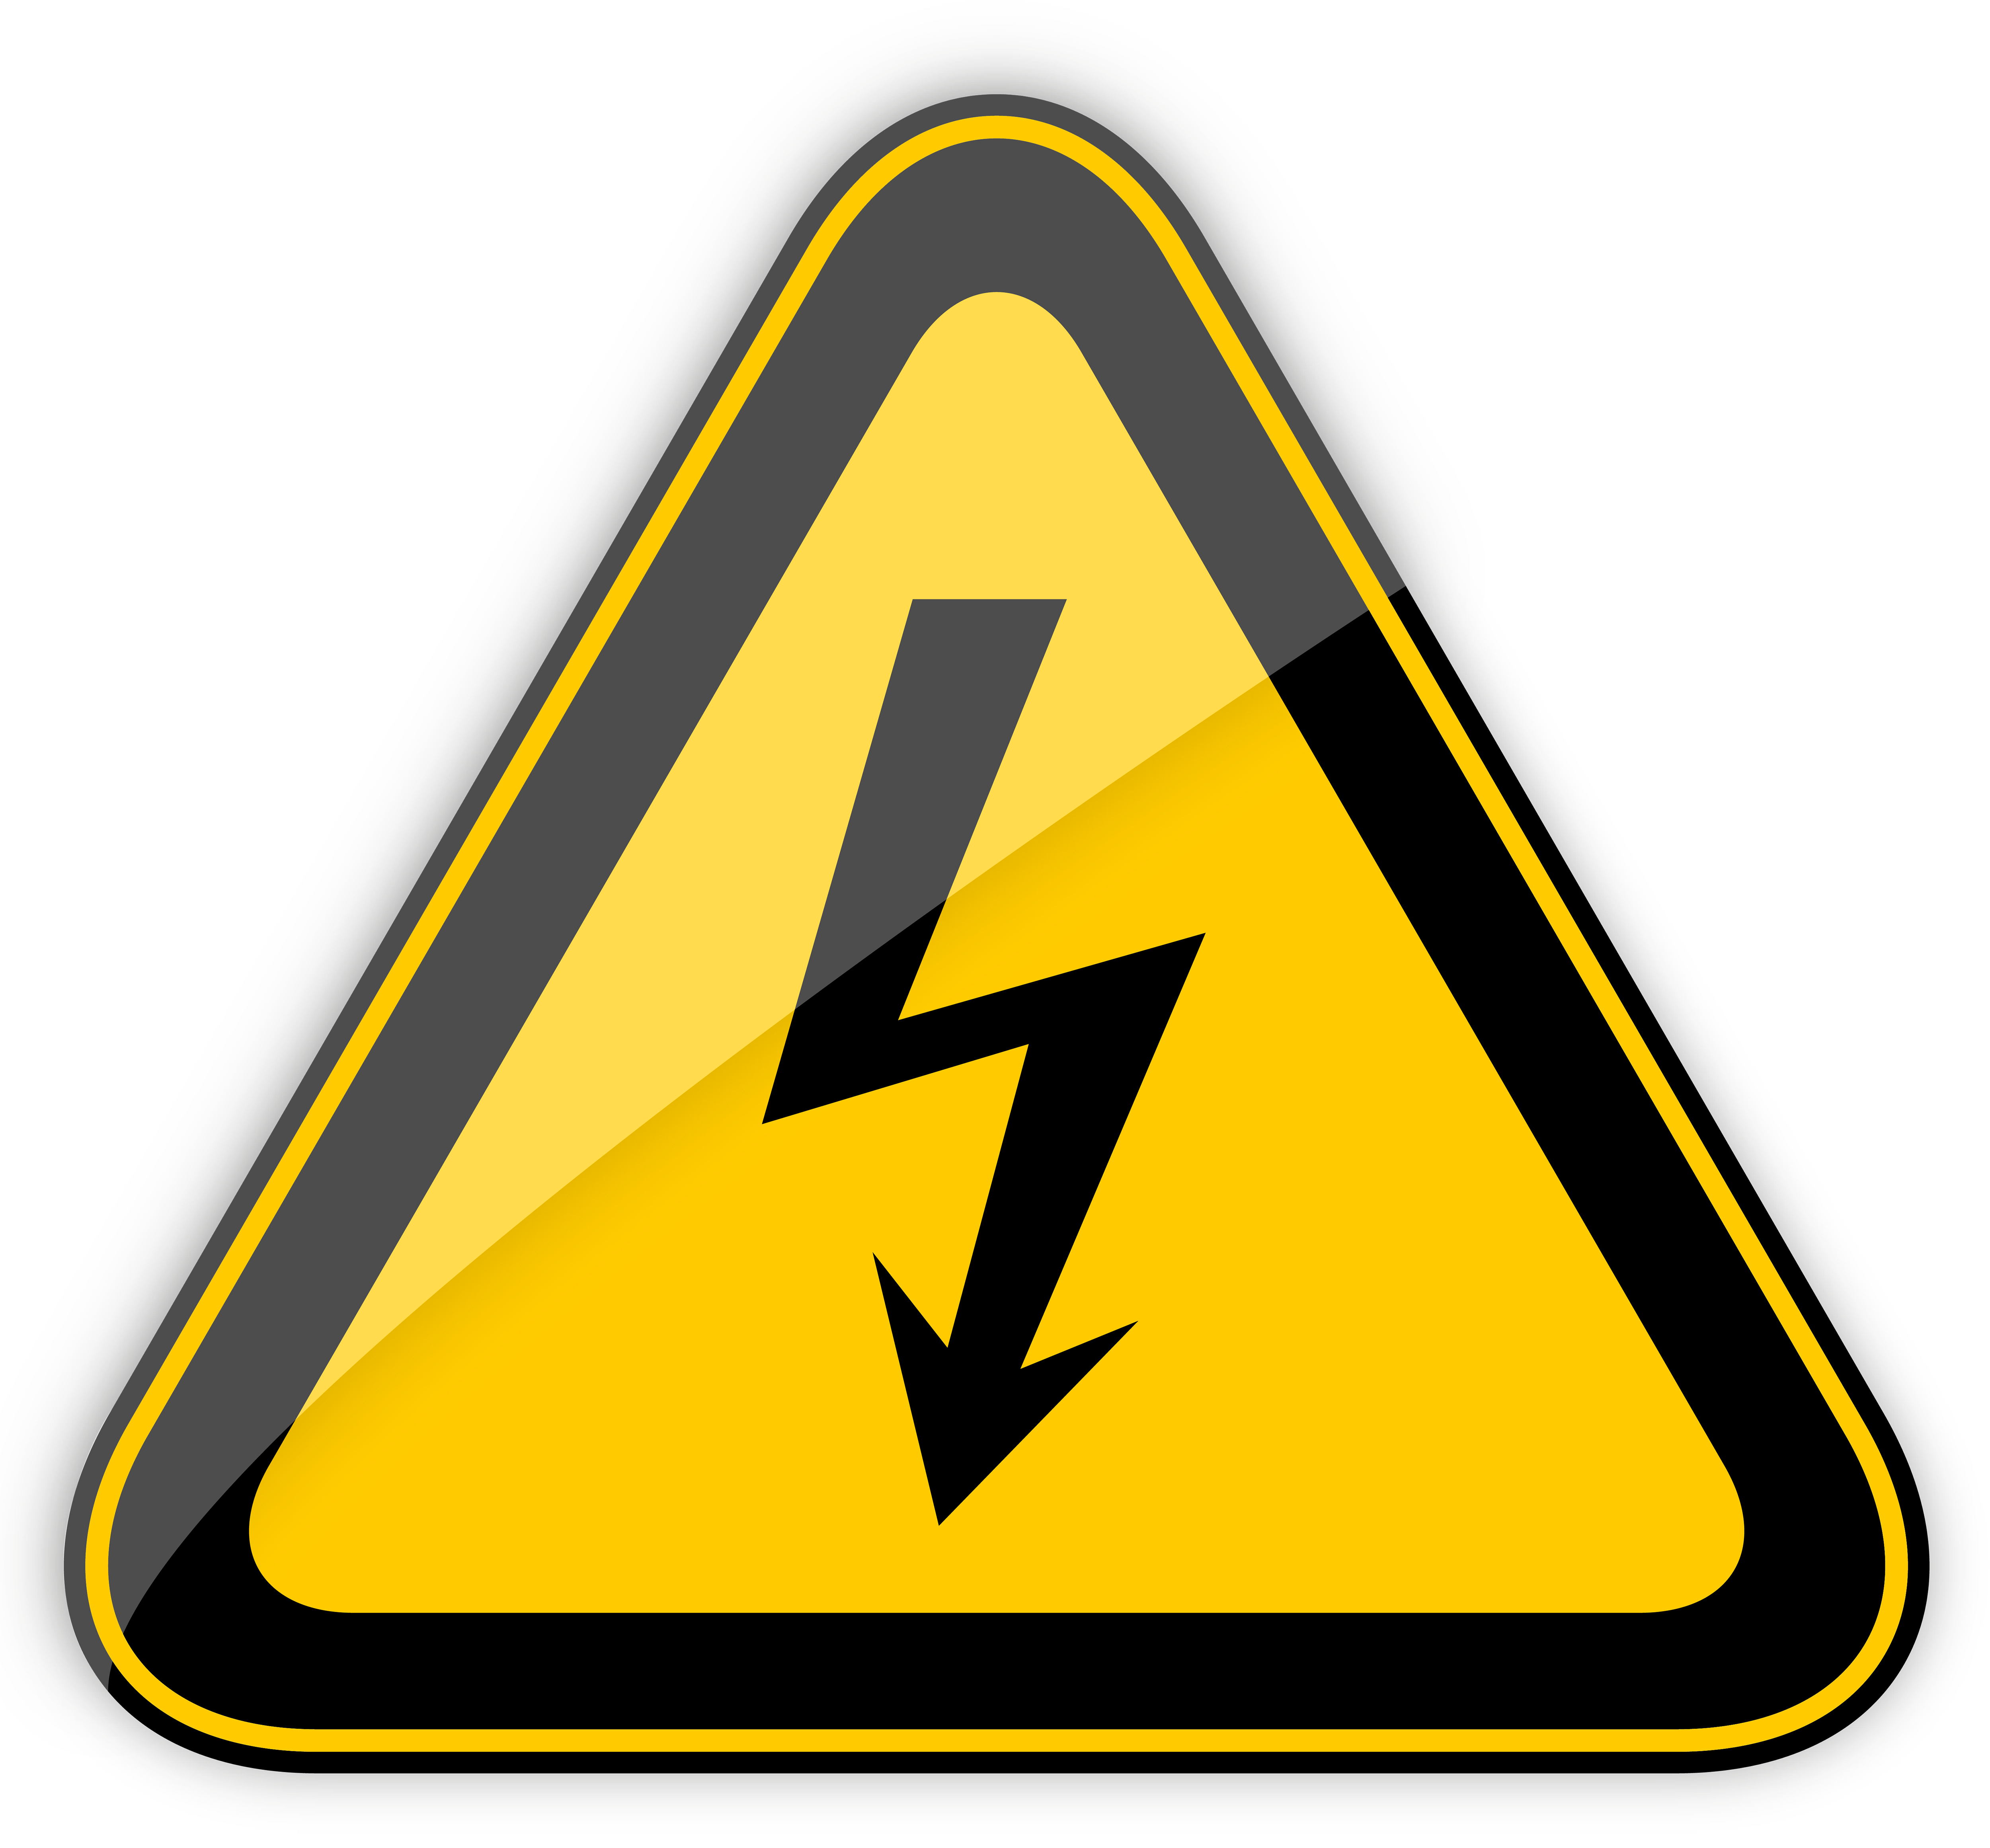 High Voltage Warning Sign PNG Clipart.